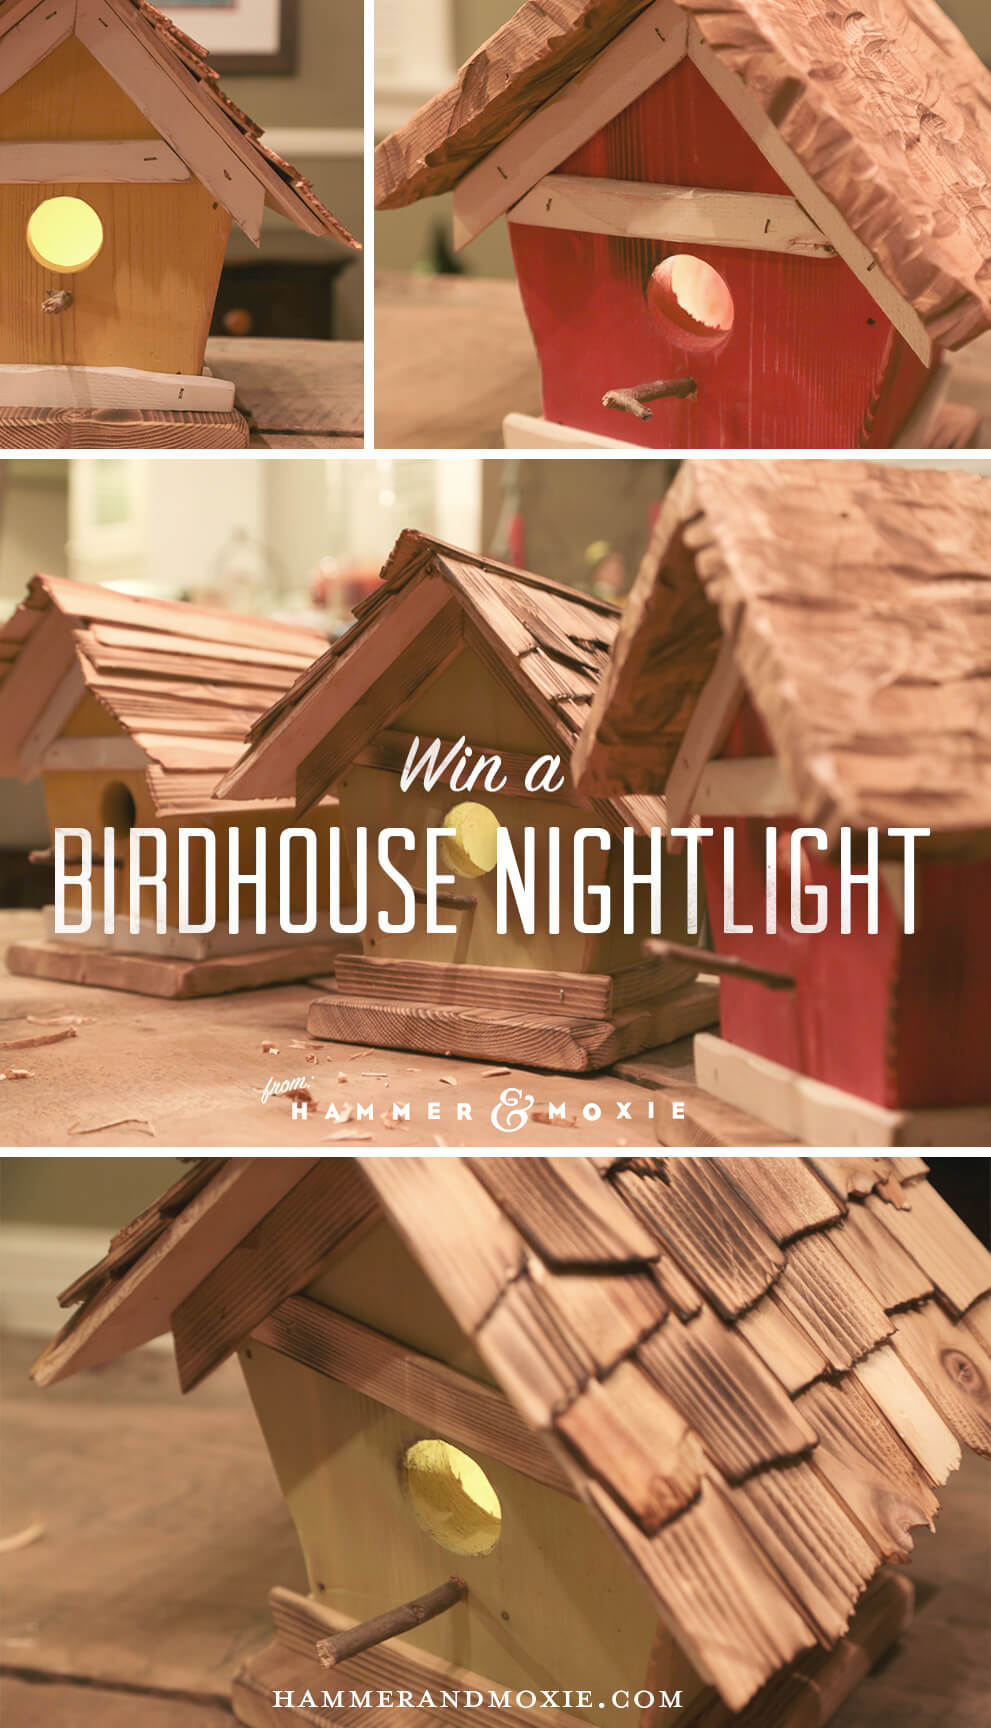 Birdhouse Giveaway: Win a decorative birdhouse nightlight from Hammer & Moxie.